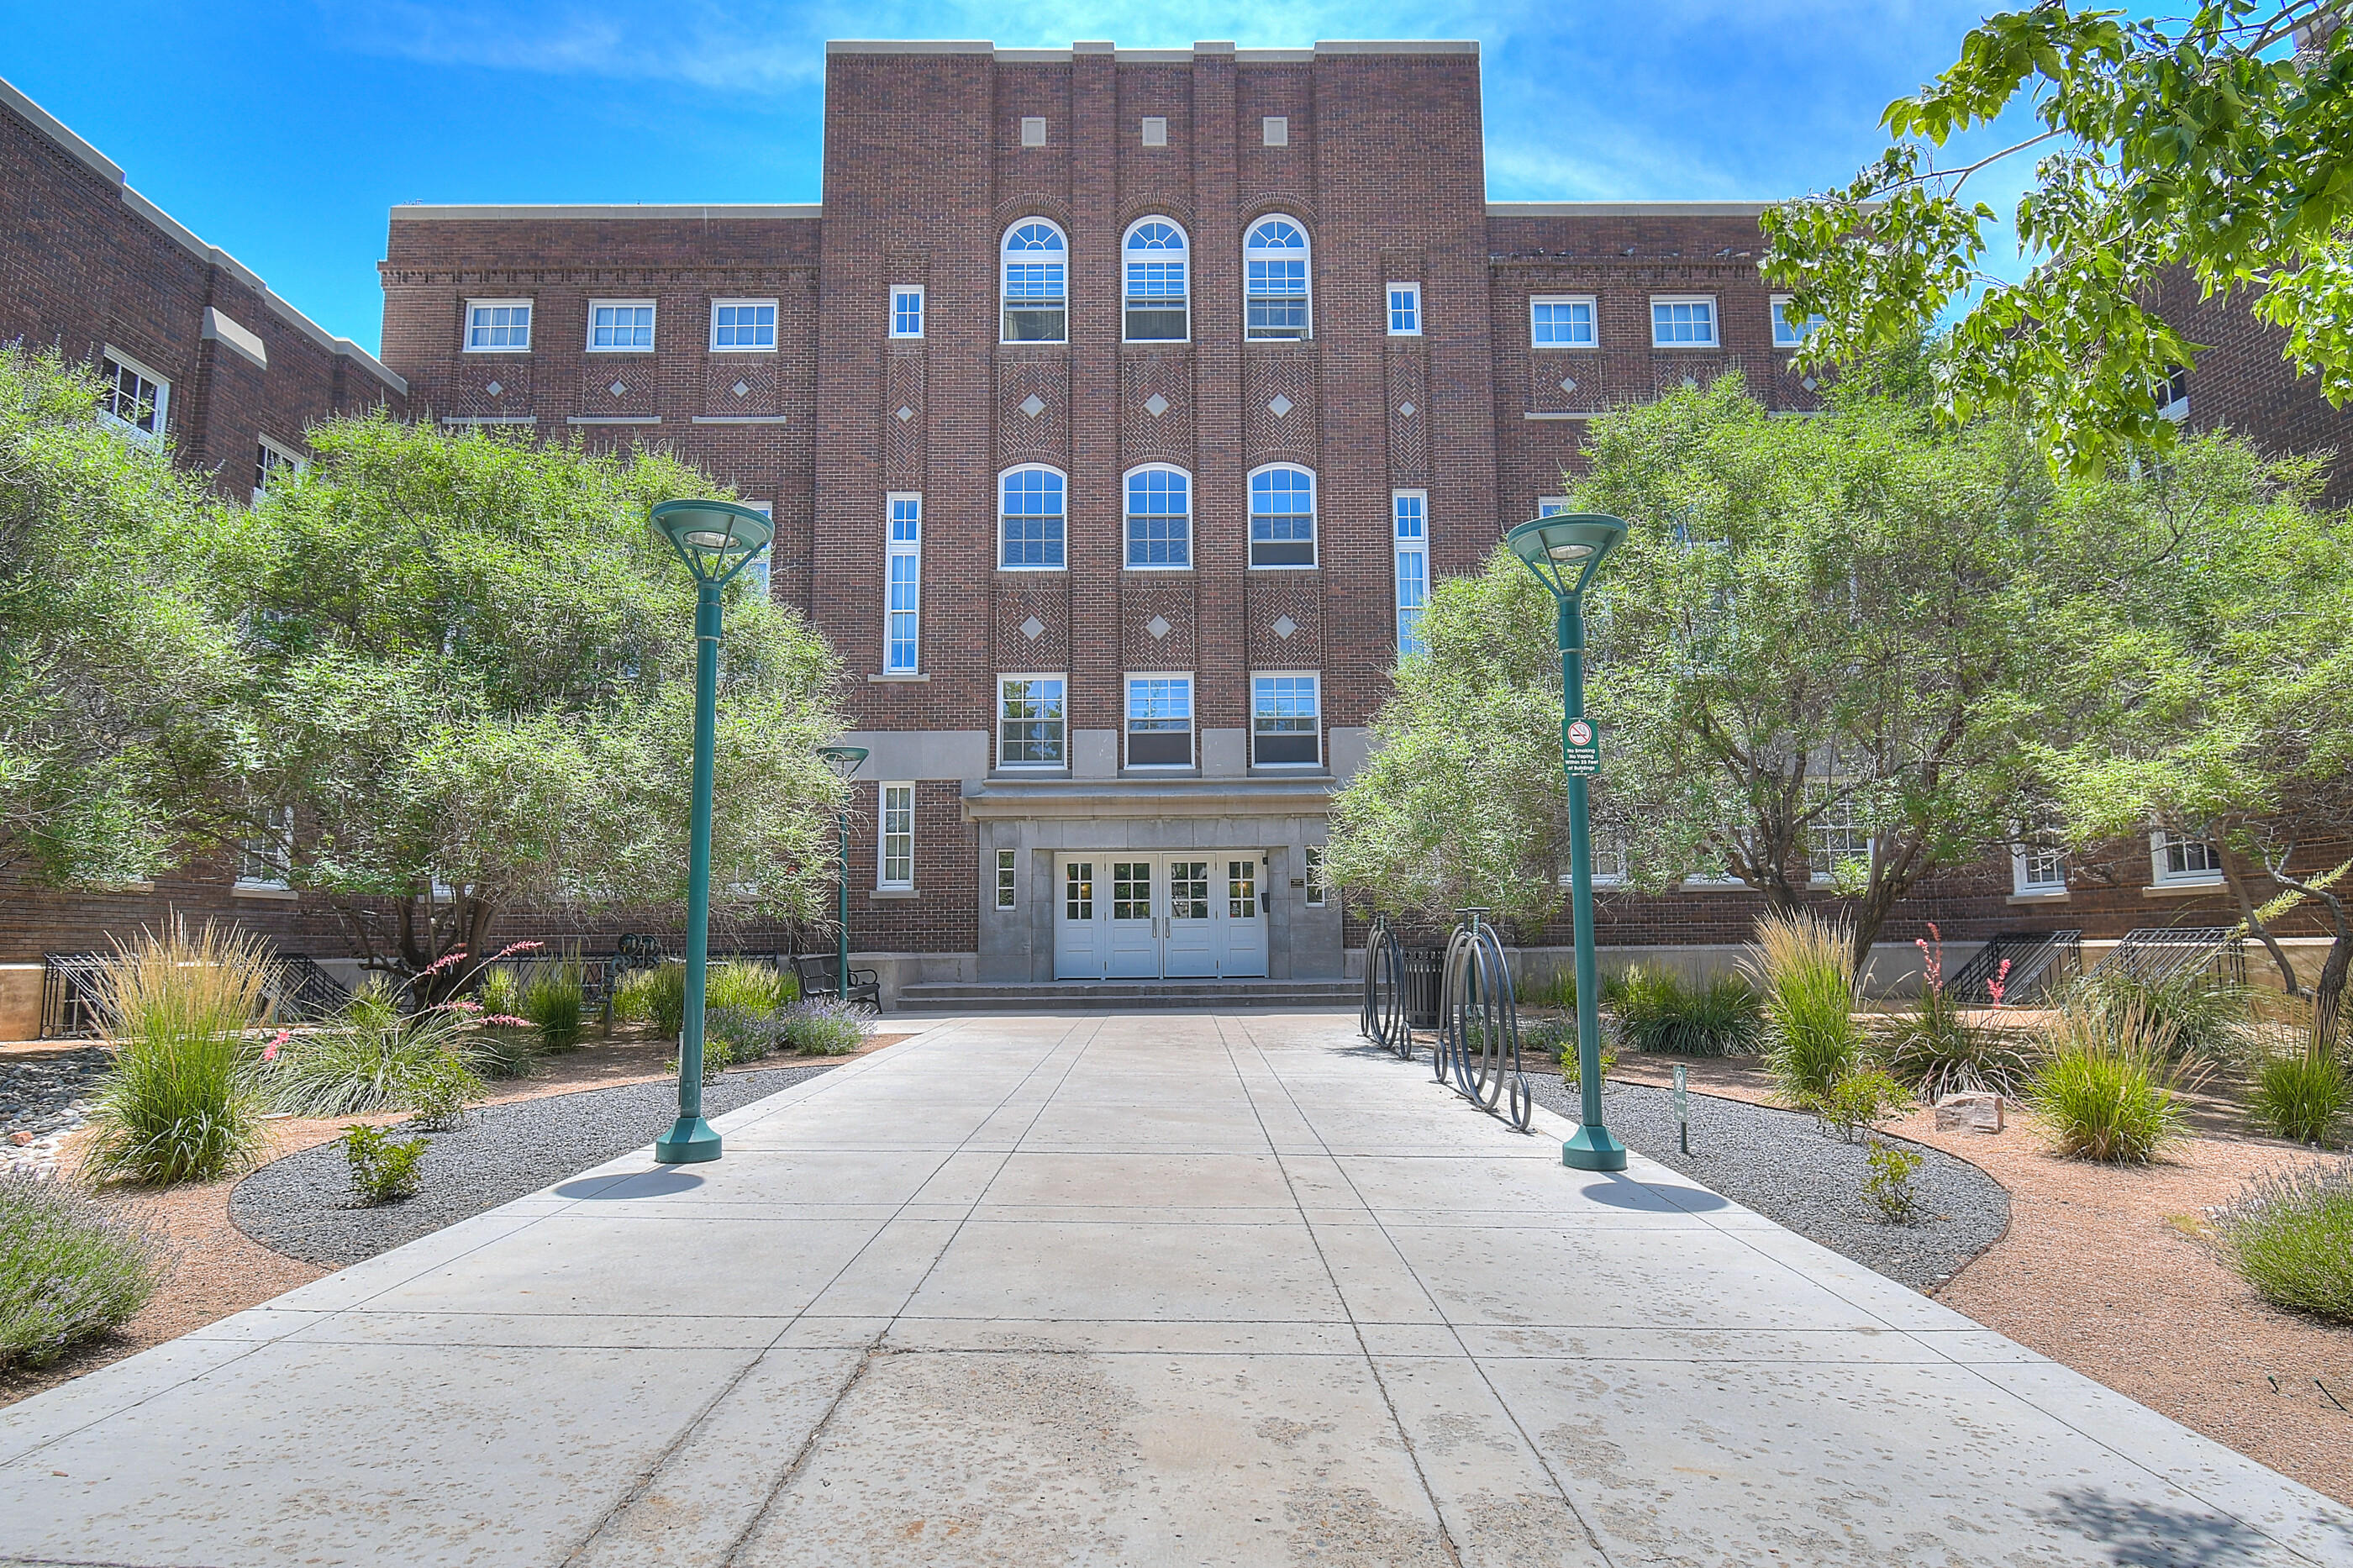 Live the downtown urban lifestyle you crave!  Located in the Historic Albuquerque High Gym Lofts, this stylish condo has a bright greatroom with engineered wood on entry level, large kitchen island and an upgraded bath with gigantic glass enclosed shower.  A winding staircase brings you to the loft/master area with full bath.  HOA fees cover water, trash, recycling and ground maintenance.